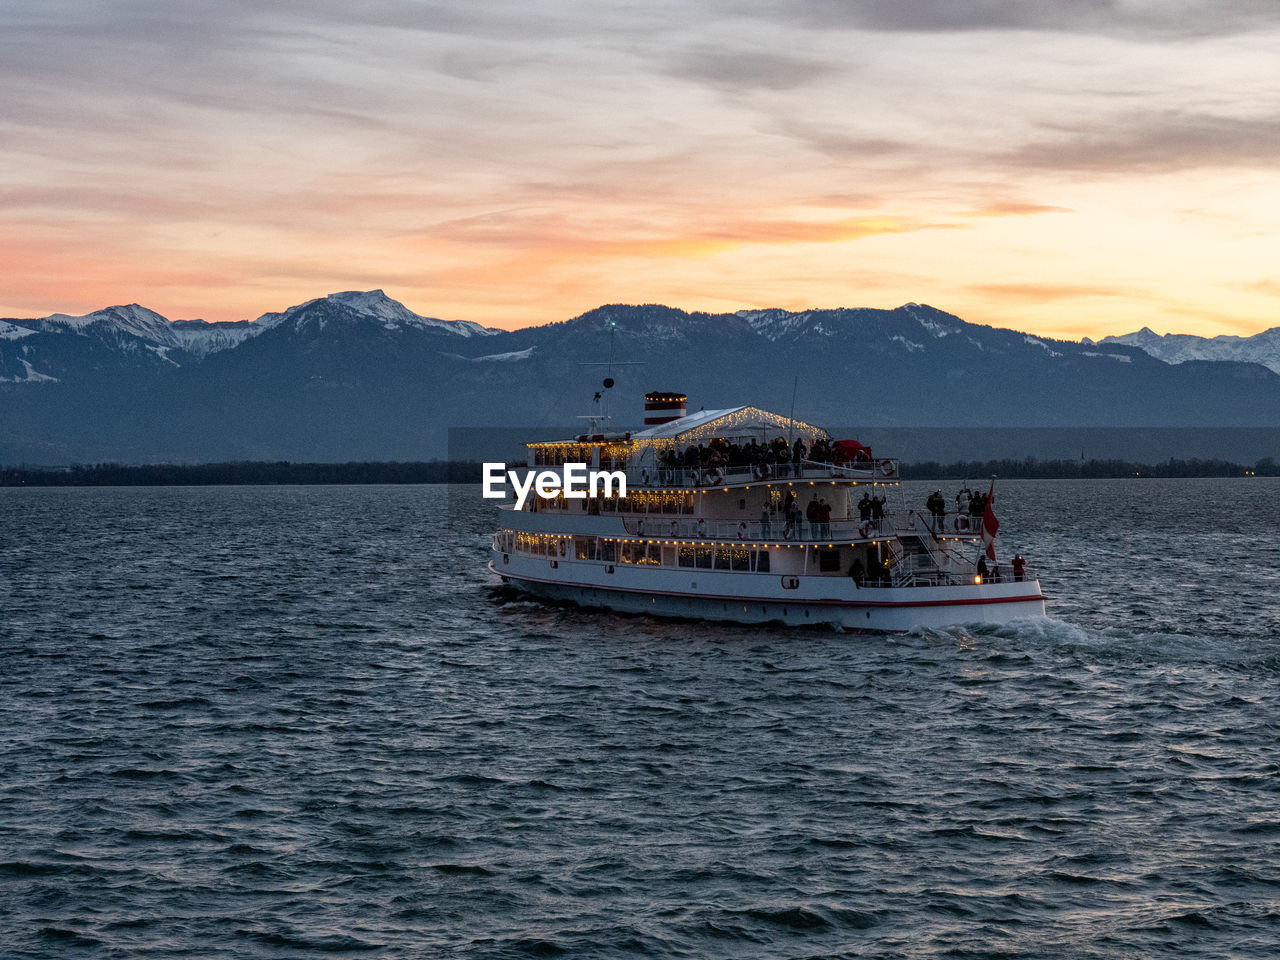 sky, mountain, nautical vessel, mode of transportation, water, transportation, beauty in nature, sunset, waterfront, cloud - sky, scenics - nature, mountain range, travel, sea, group of people, nature, sailing, real people, crowd, outdoors, passenger craft, snowcapped mountain